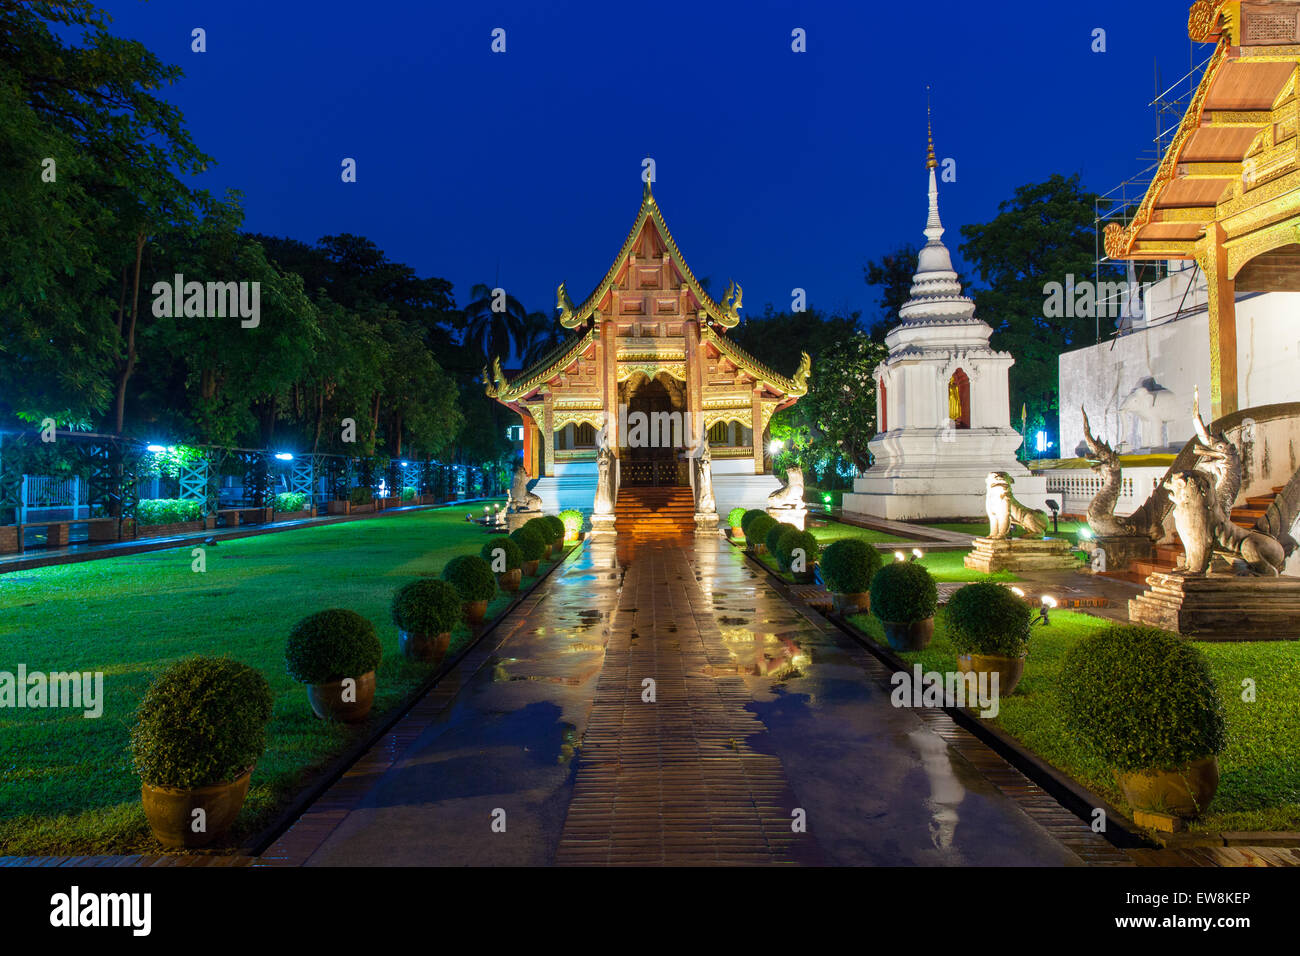 Wat Phra Singh Temple at night, Chiang Mai, Thailand. Chiang Mai's most revered temple. - Stock Image